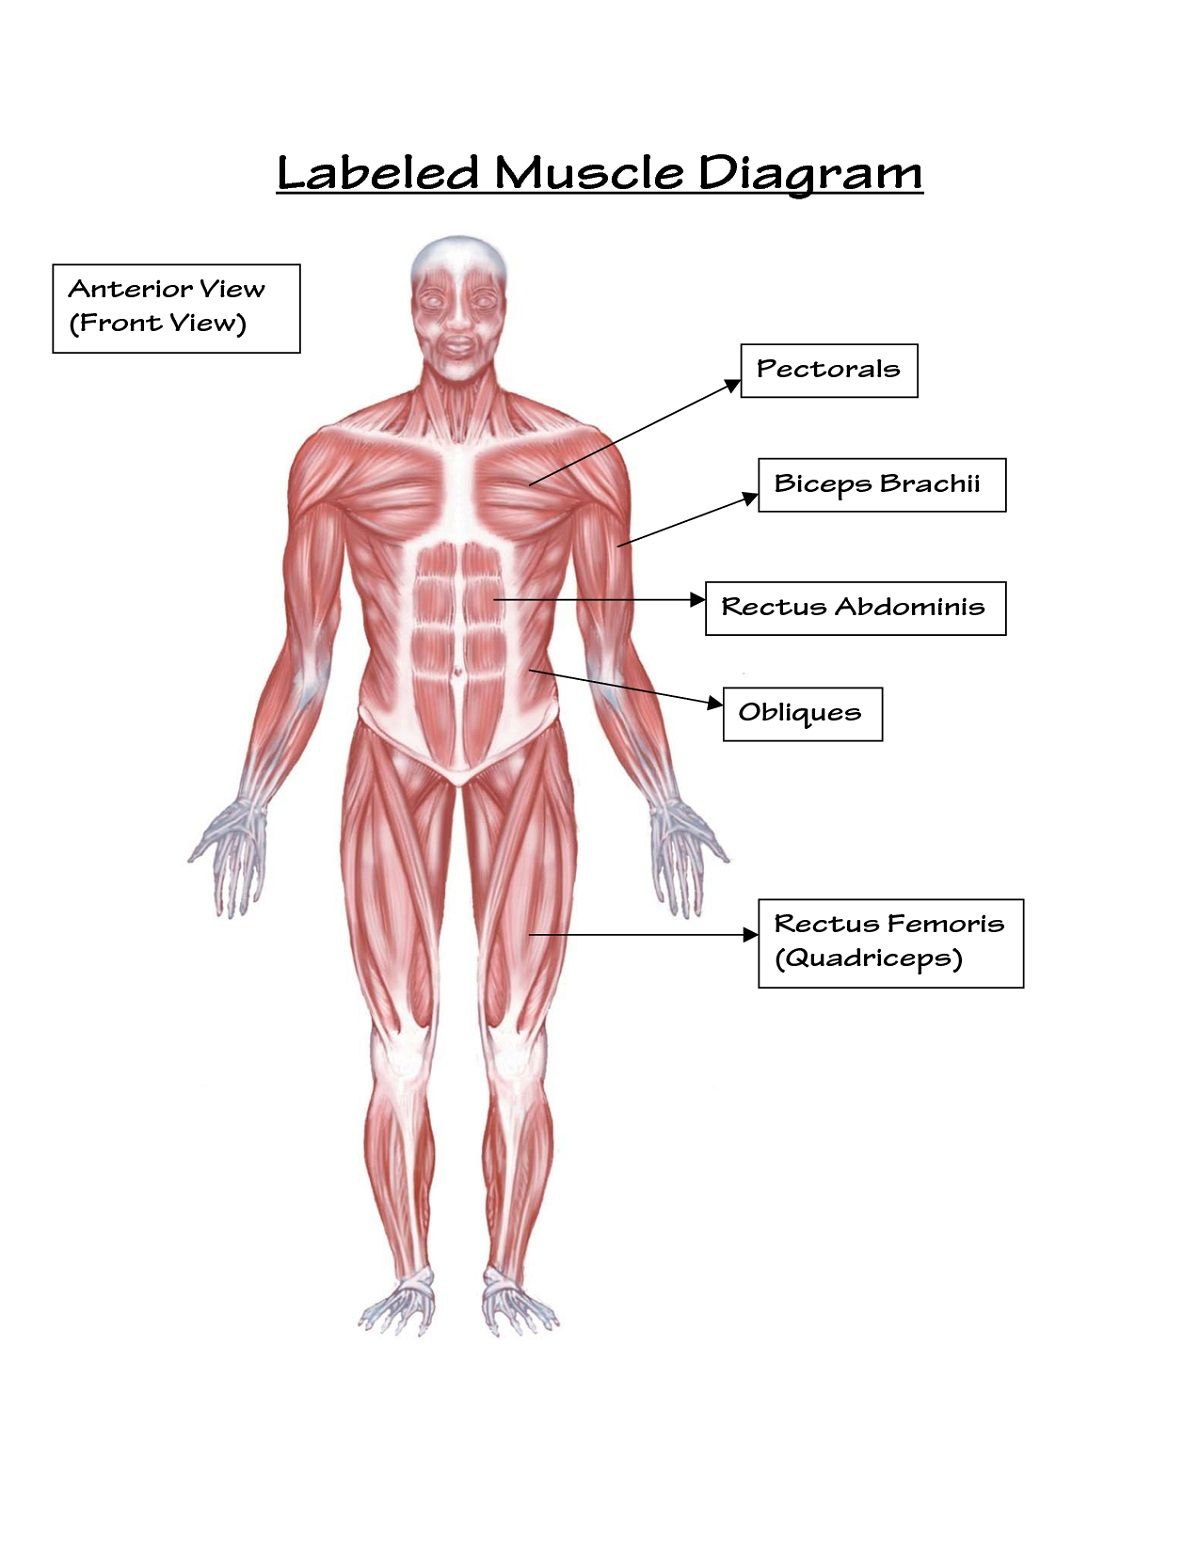 human muscular system blank diagram skin without labels of the body anatomy pinterest diagrams link